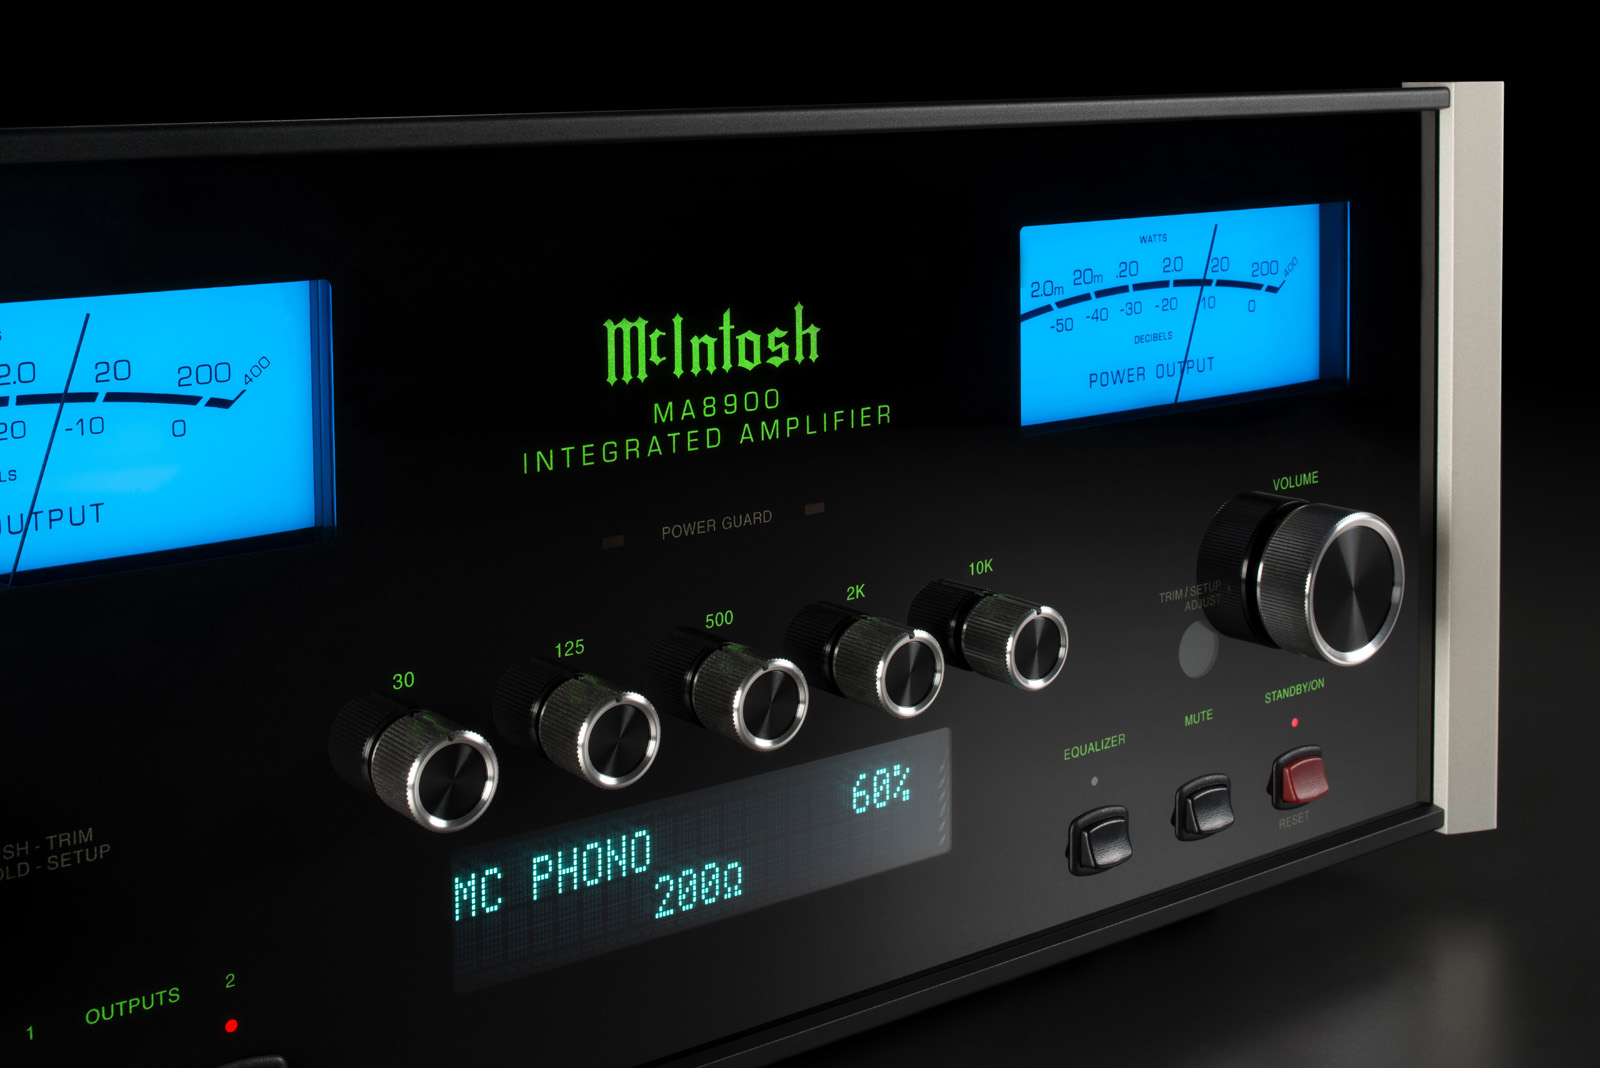 McIntosh MA8900 2 front